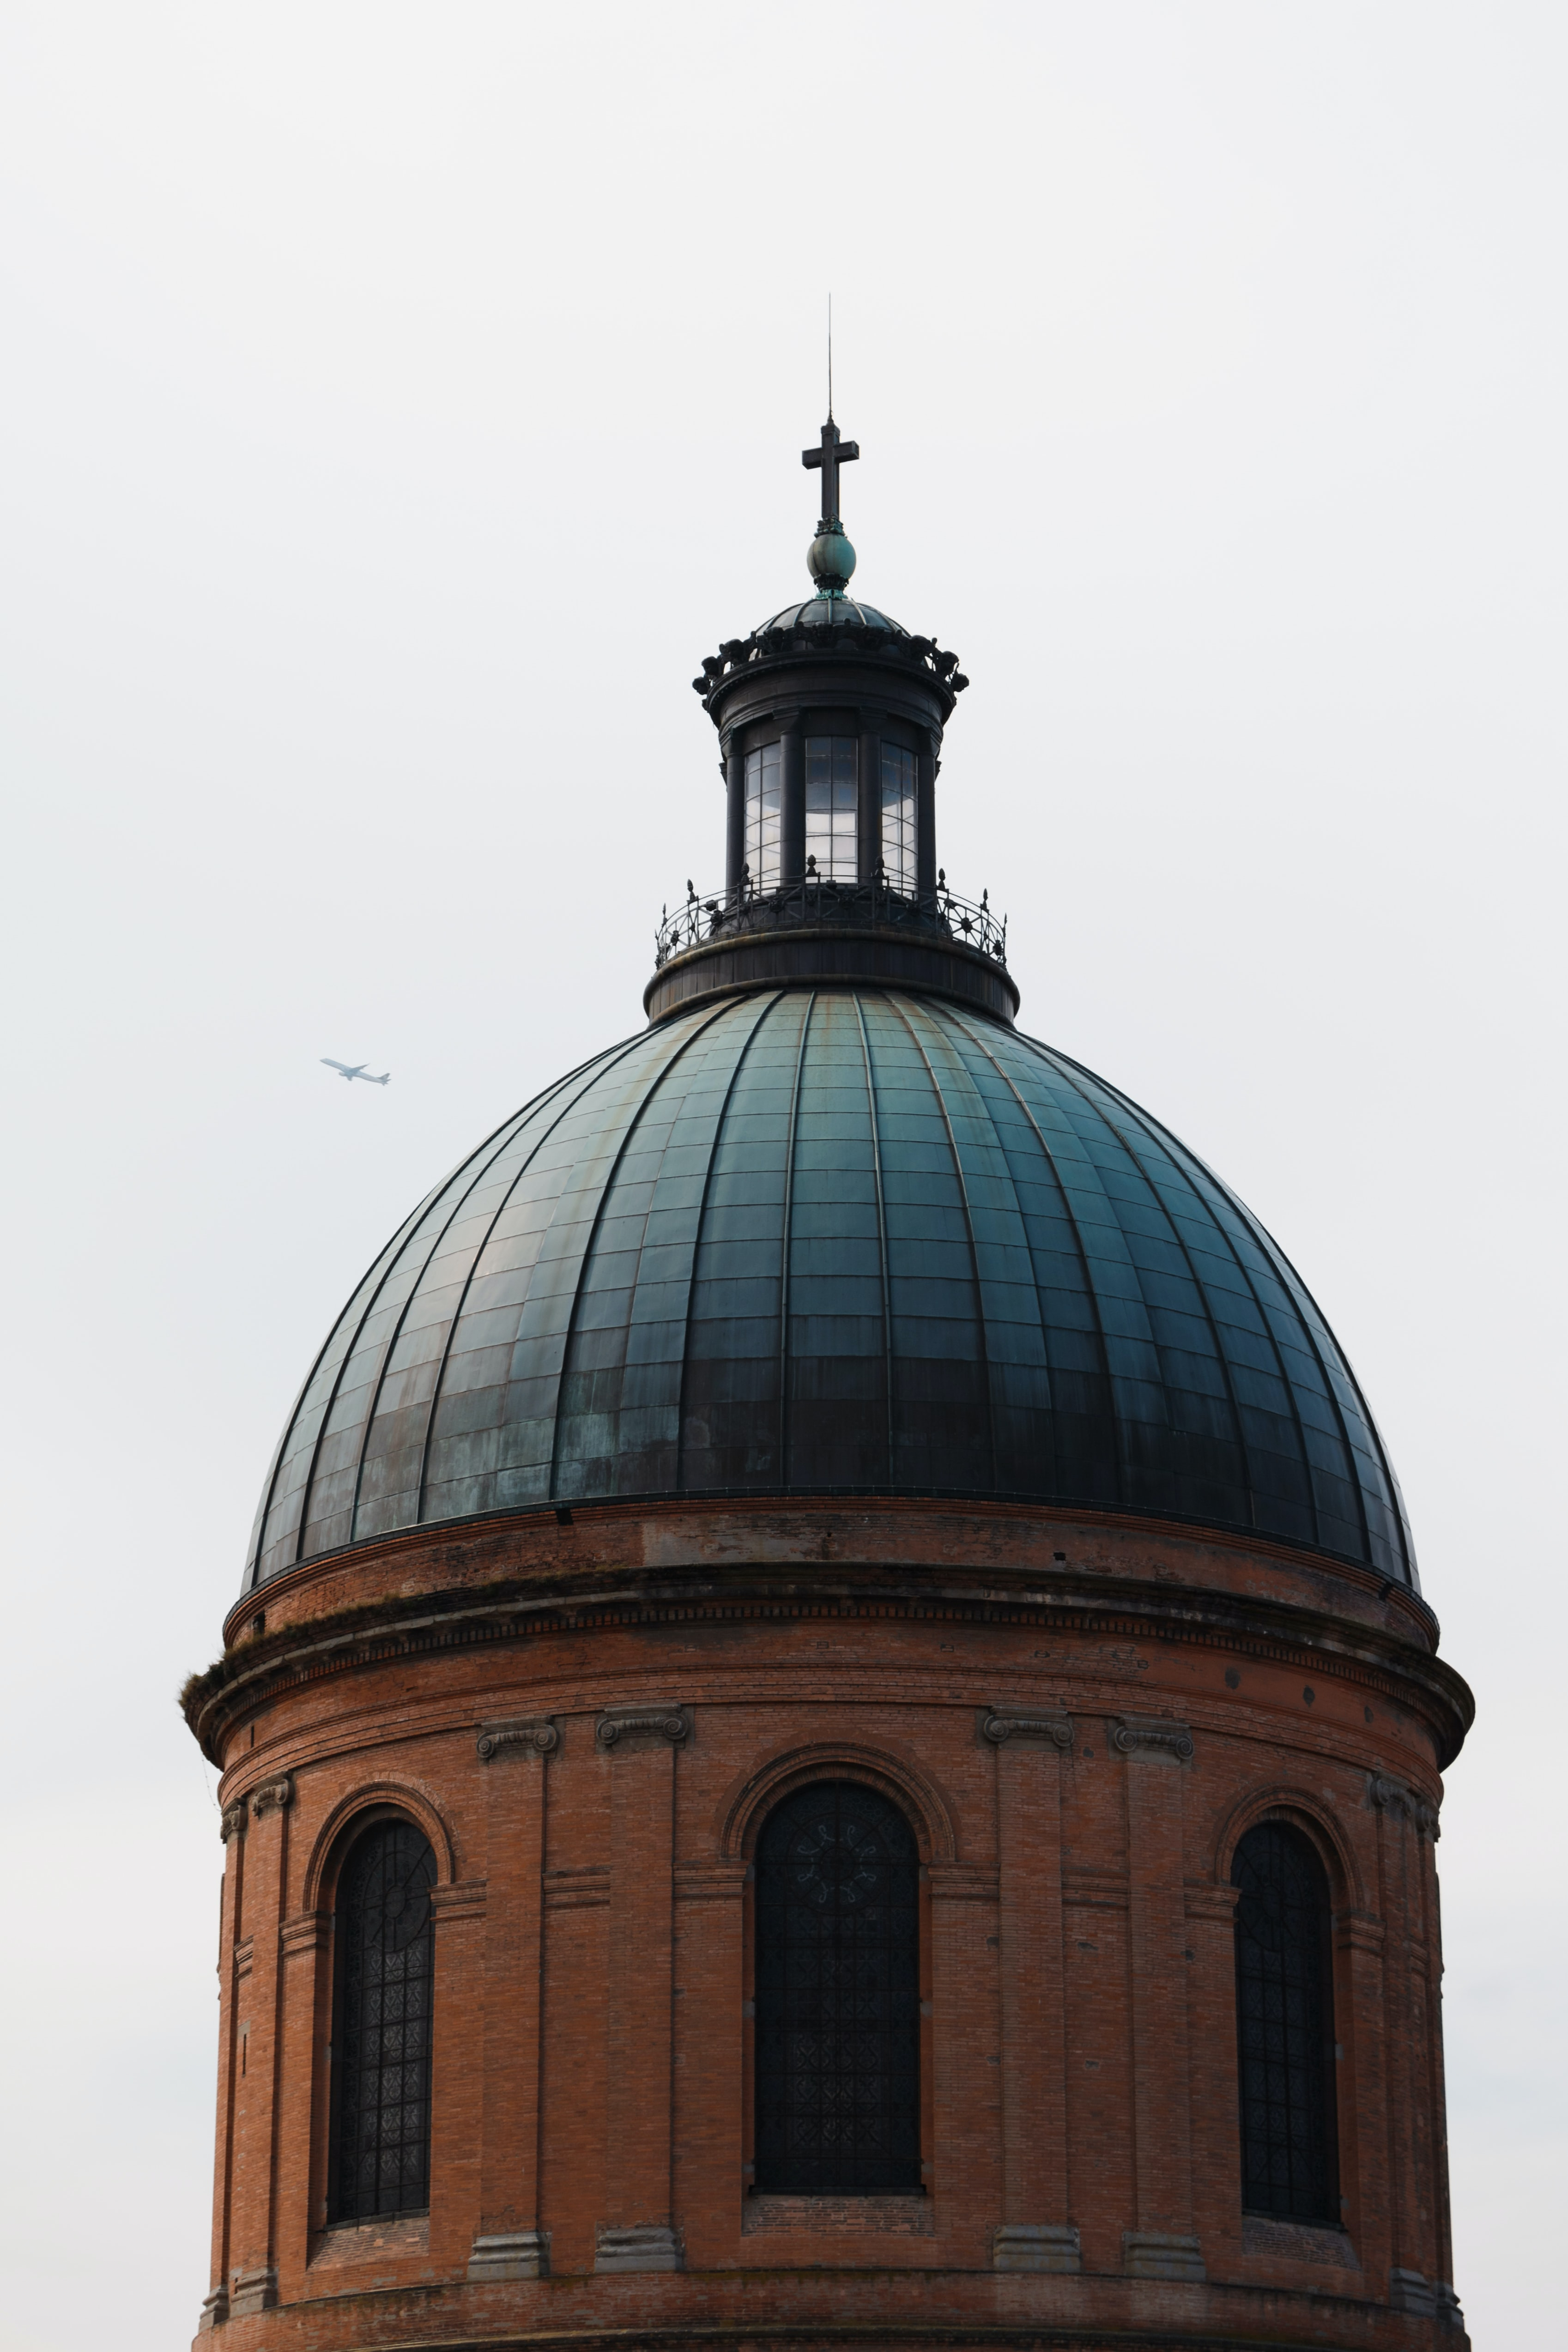 Dome of Hôpital de La Grave with cross at the top and dark windows